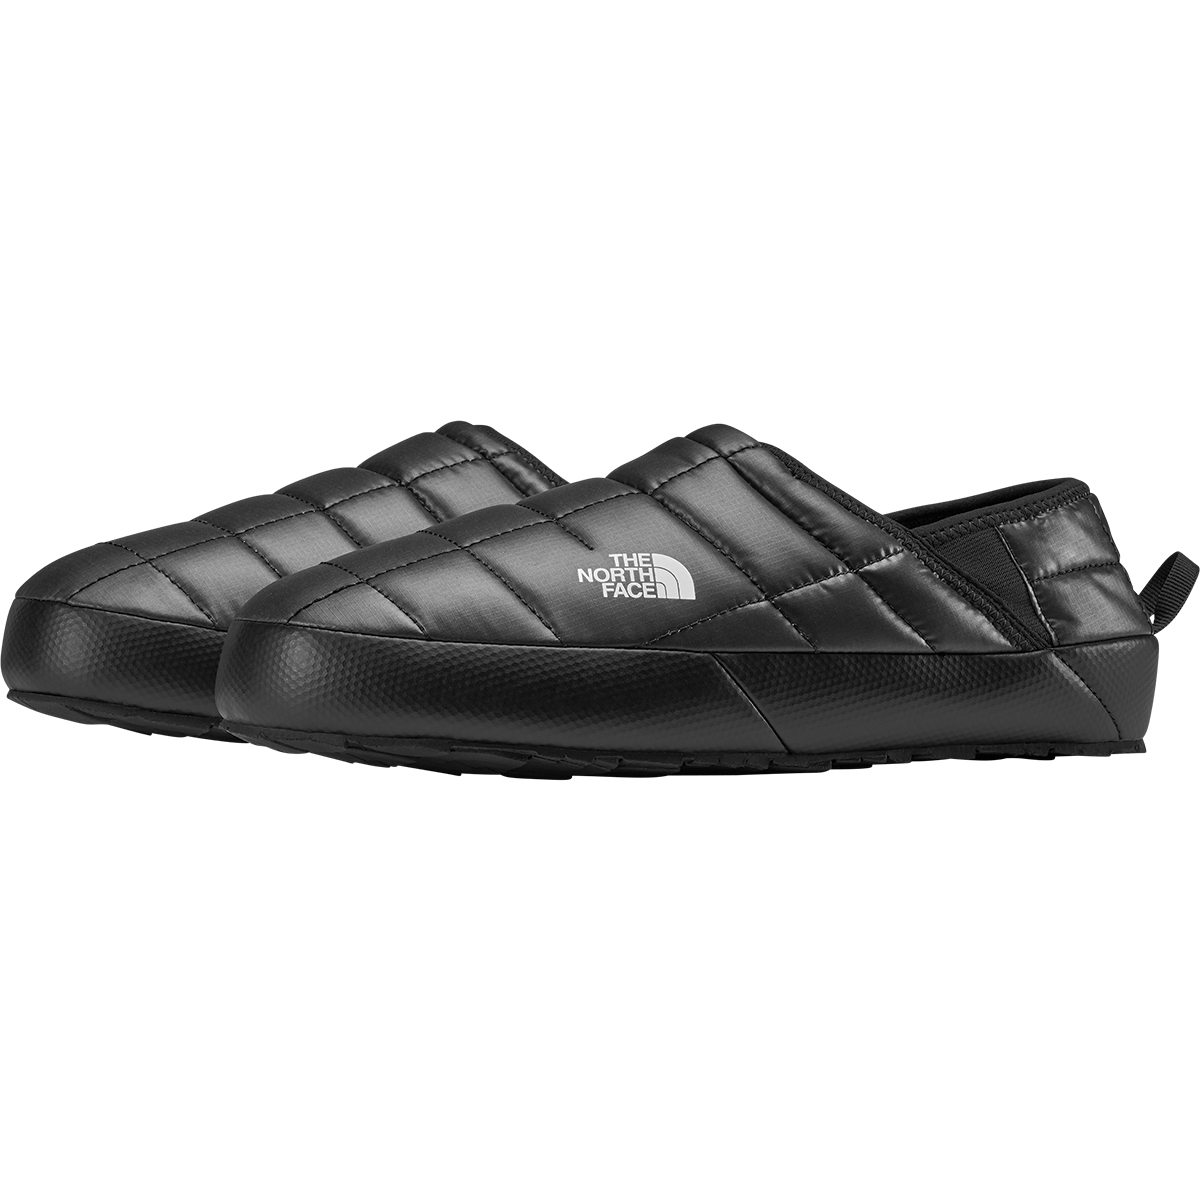 The North Face Men's Thermoball Traction Mules V - Black, 11